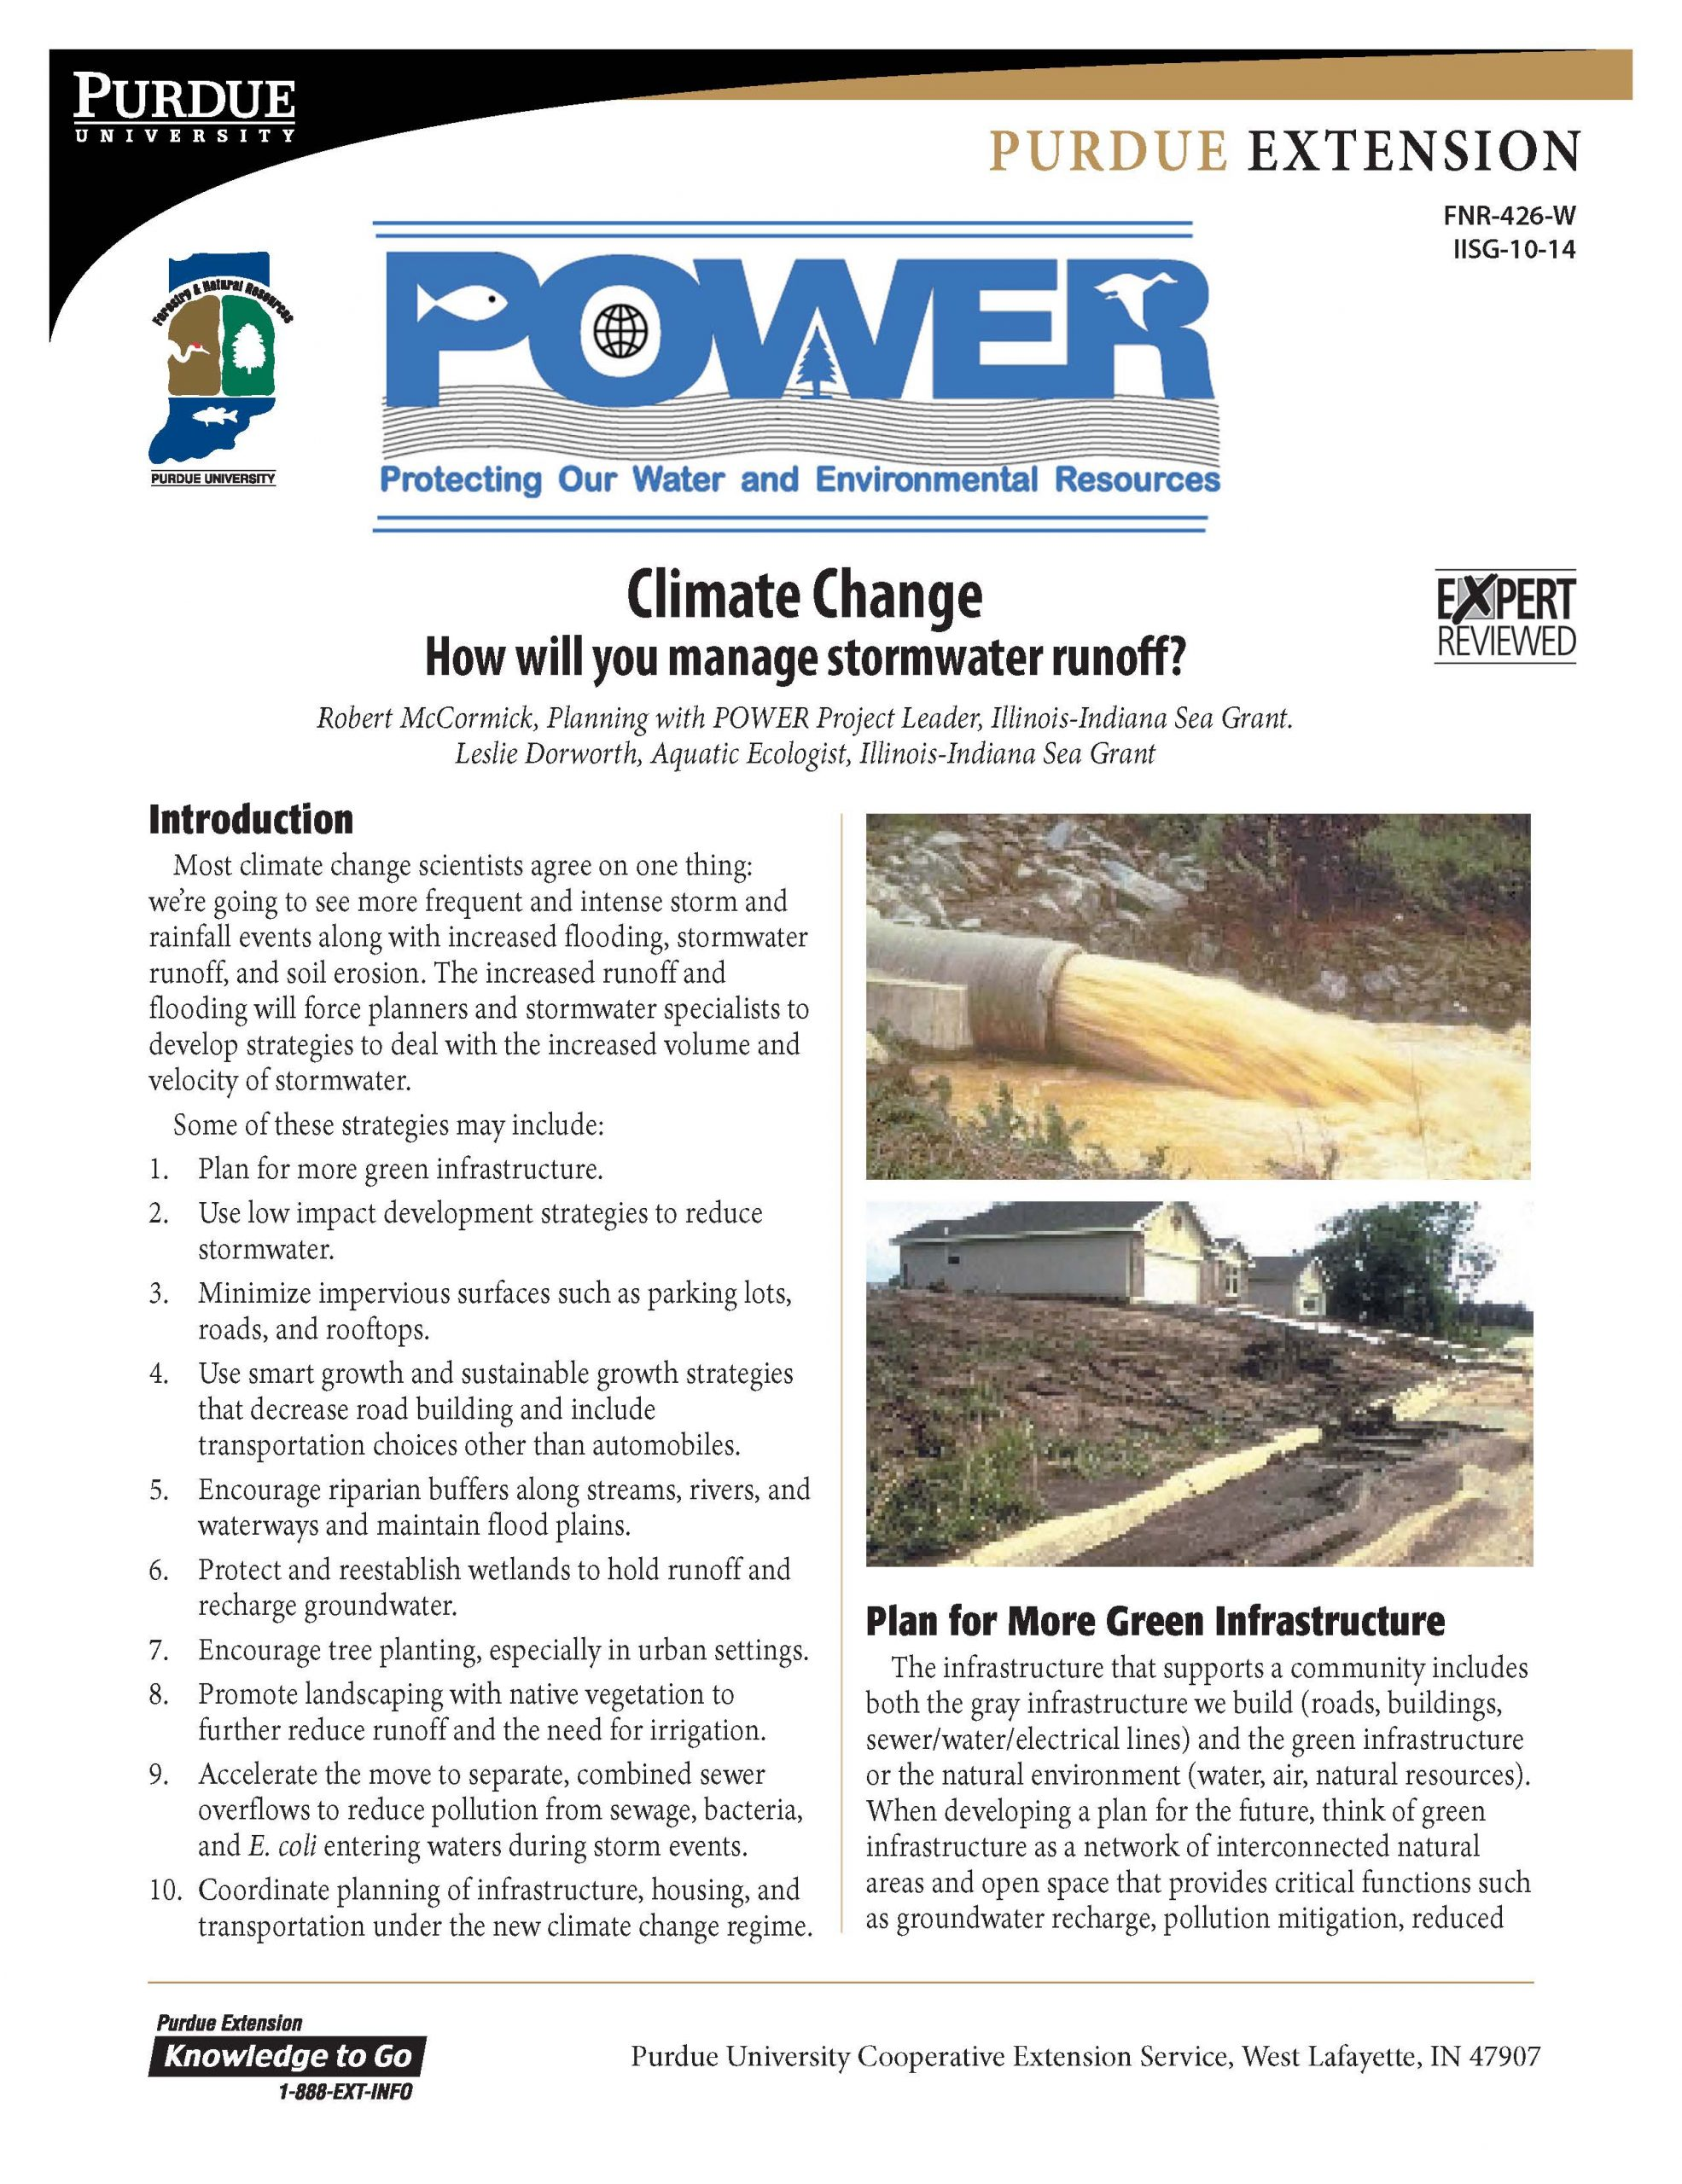 Climate Change: How will you manage stormwater runoff? Thumbnail